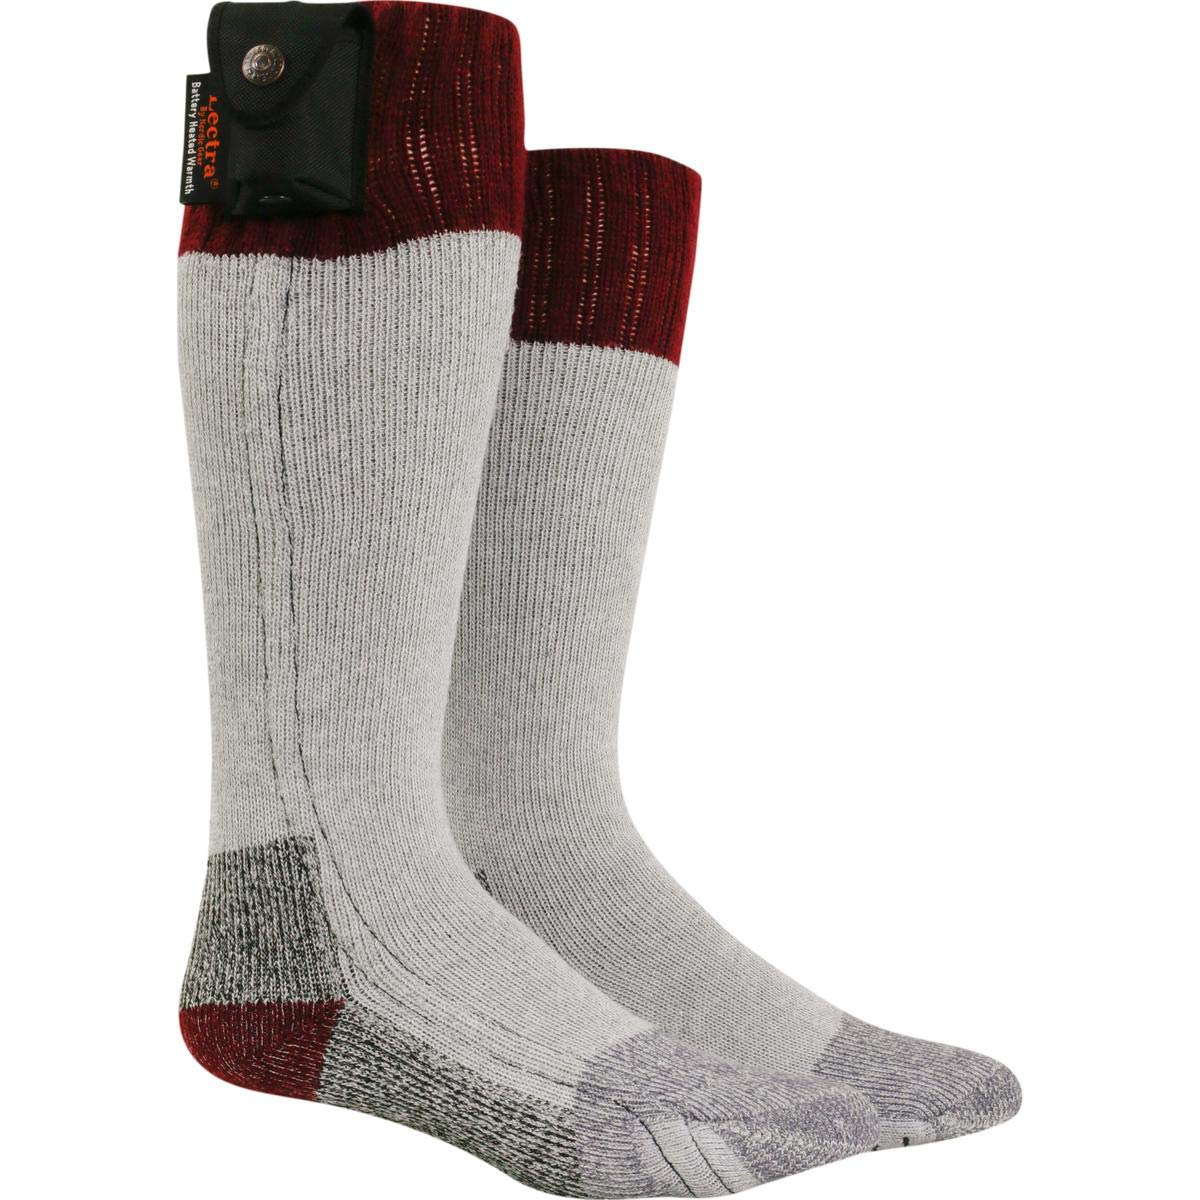 Nordic Gear Unisex Lectra Sox-Electric Battery Heated Socks - X-Small/Small - Maroon by Turtle Fur